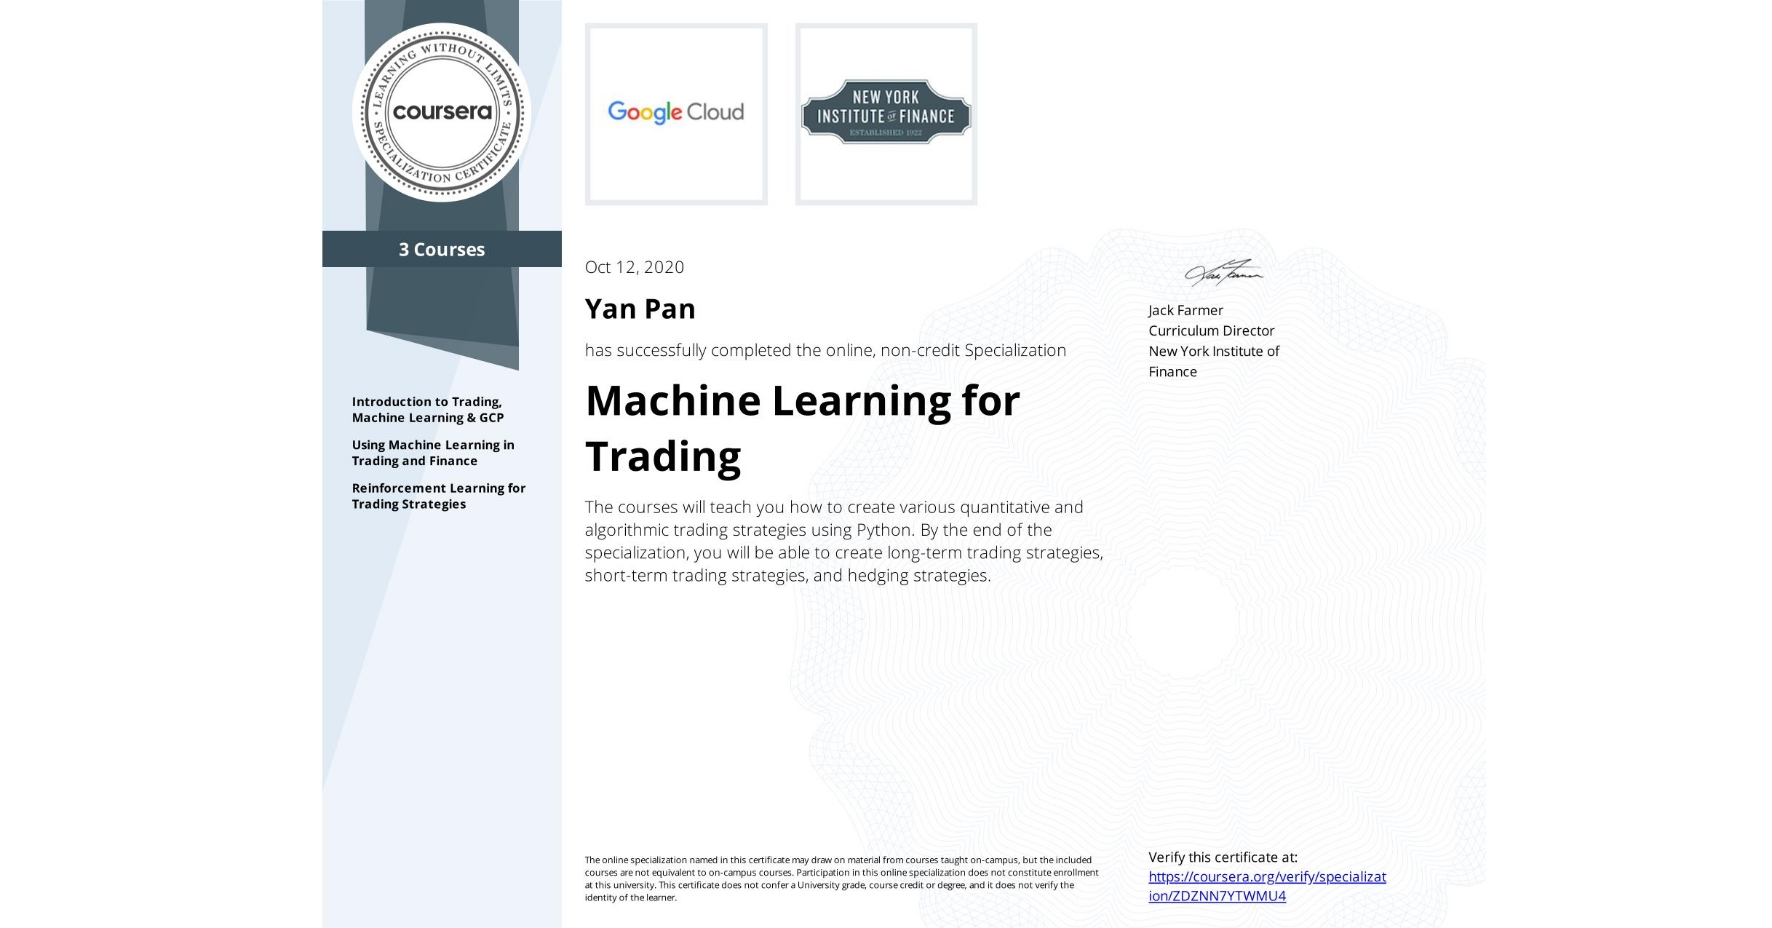 View certificate for Yan Pan, Machine Learning for Trading, offered through Coursera. The courses will teach you how to create various quantitative and algorithmic trading strategies using Python. By the end of the specialization, you will be able to create long-term trading strategies, short-term trading strategies, and hedging strategies.